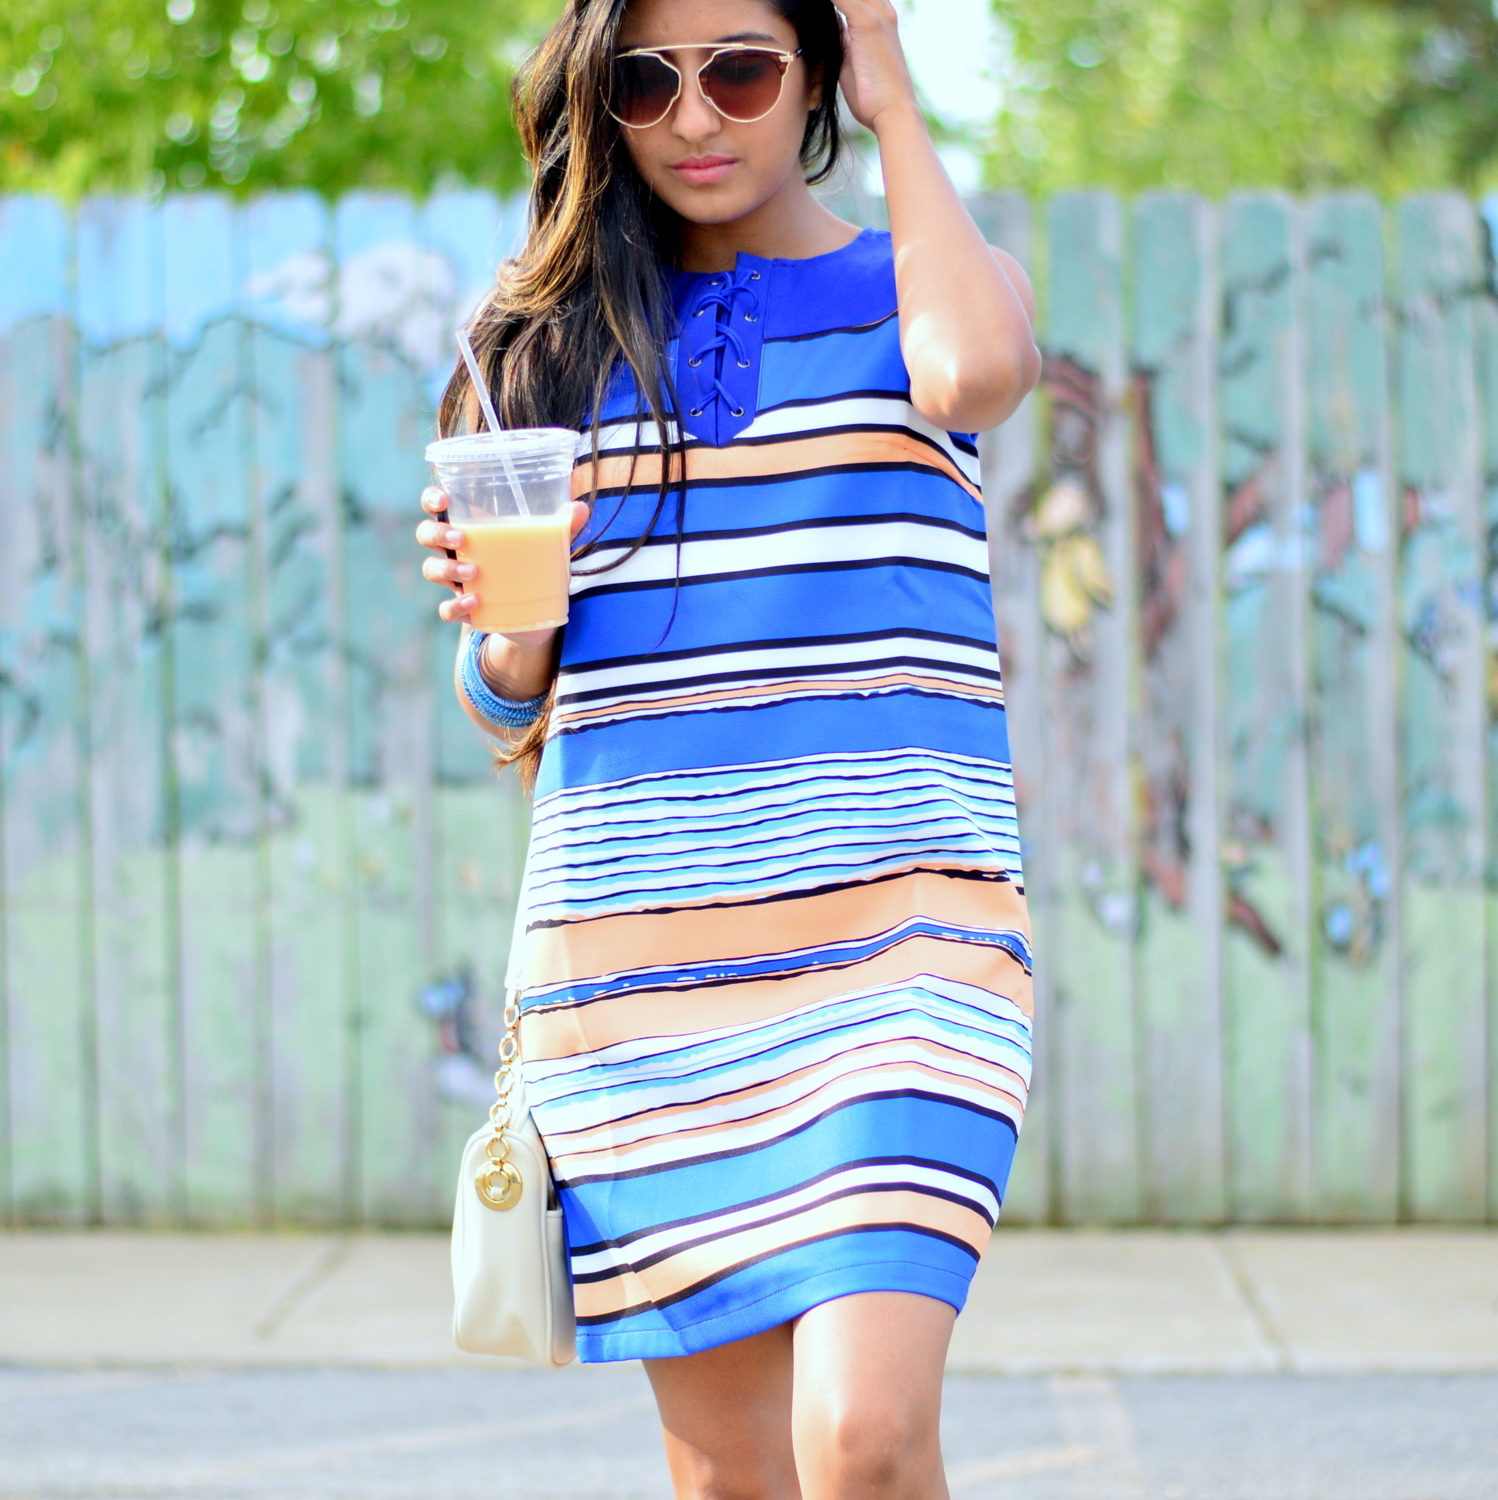 striped-laceup-dress-sneakers-summer-outfit-casual-style 2